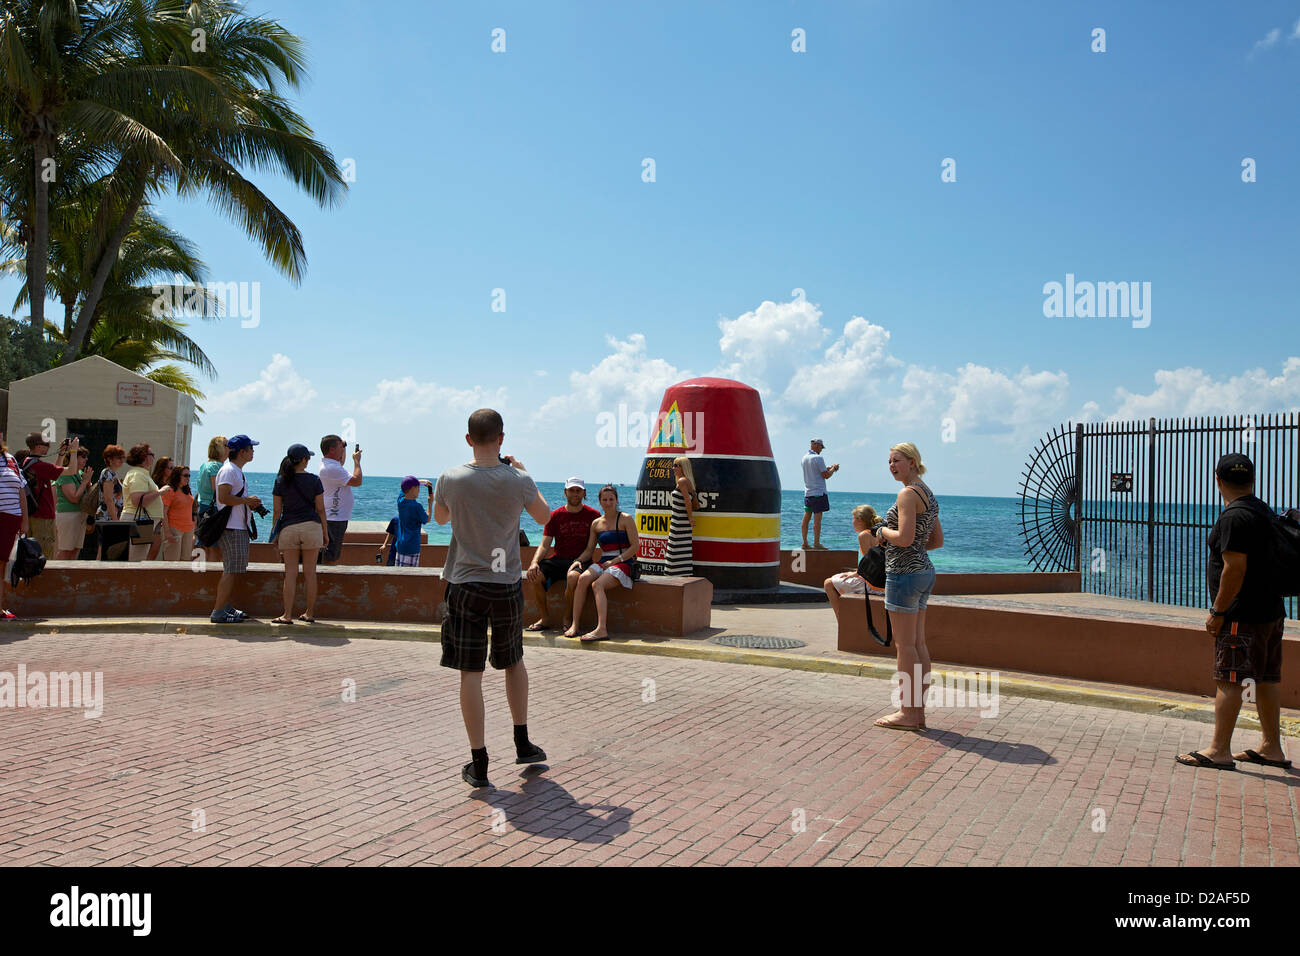 Tourists taking pictures at the Southernmost Point buoy in Key West - Stock Image